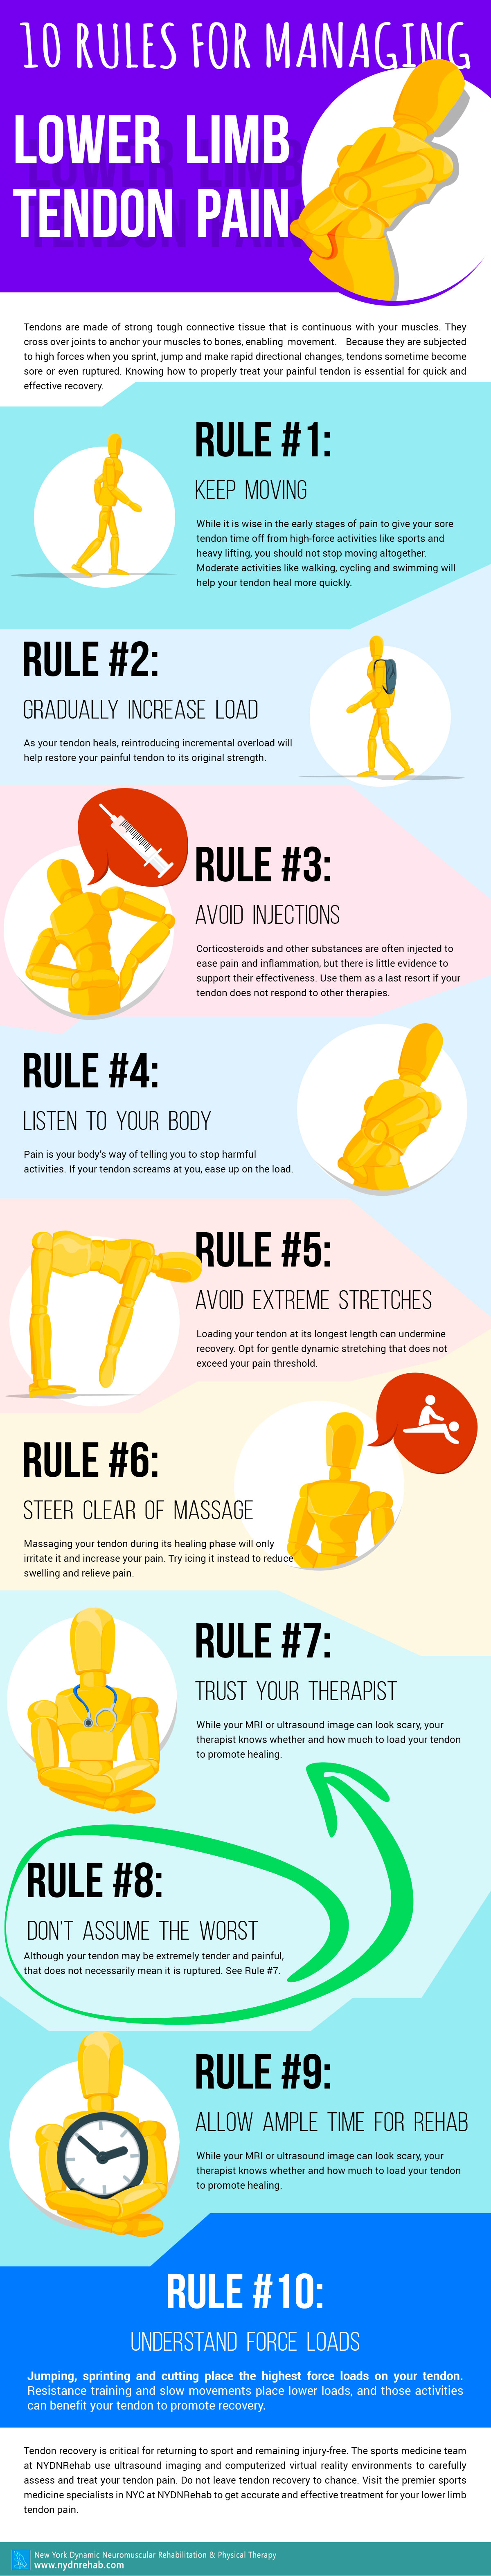 10 Rules for Managing Lower Limb Tendon Pain